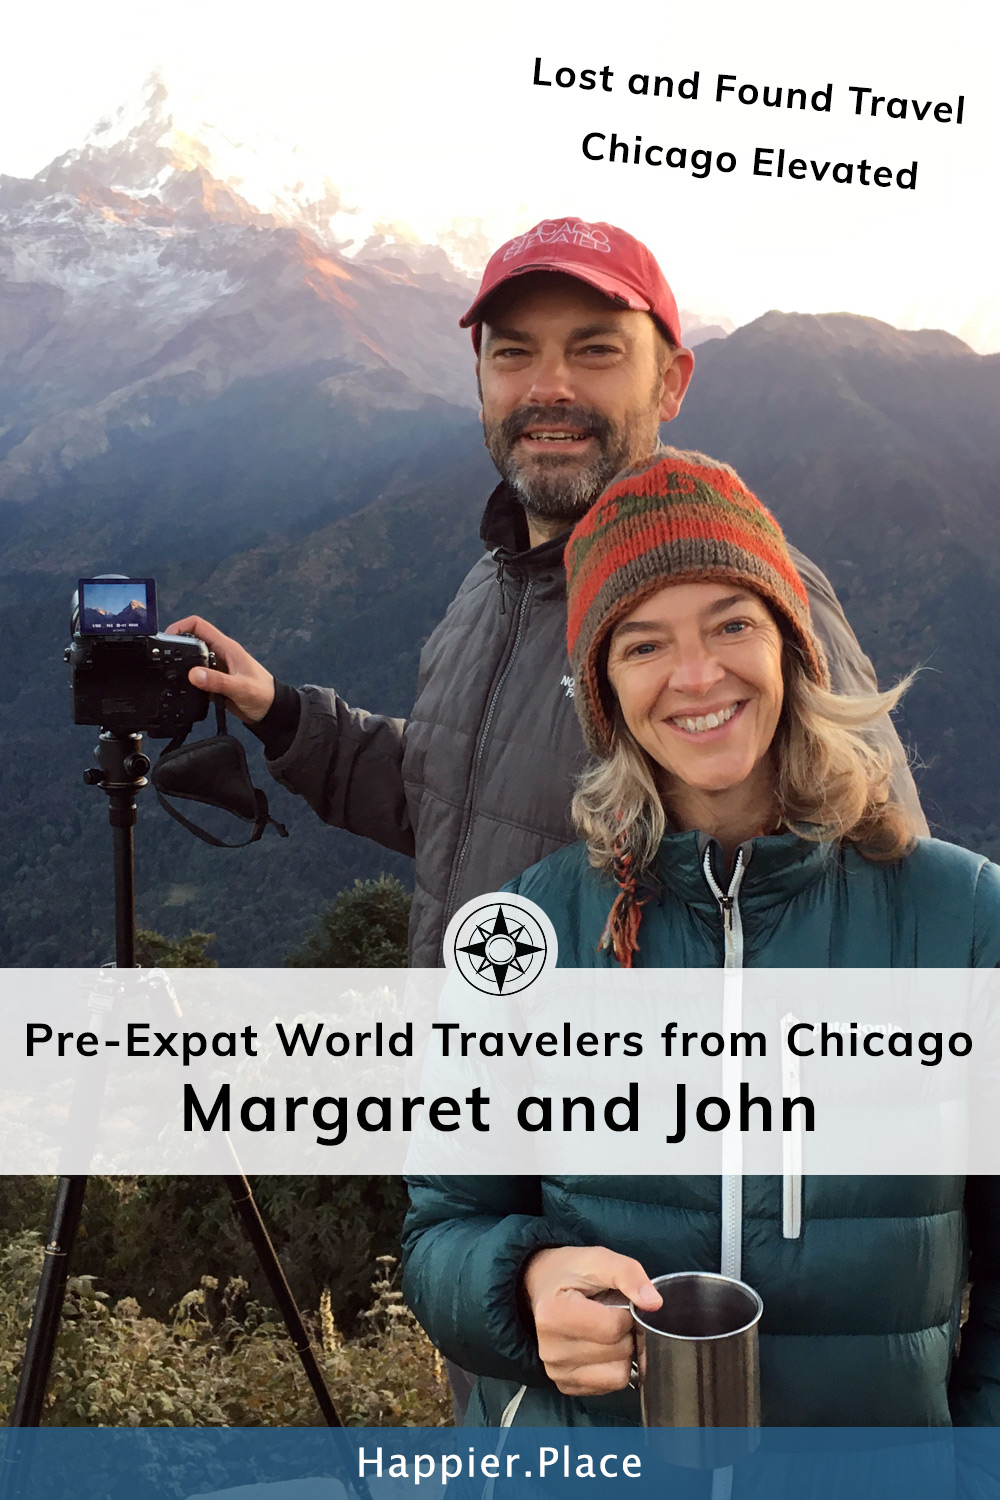 Margaret and John: Pre-Expat World Travelers (Chicago)